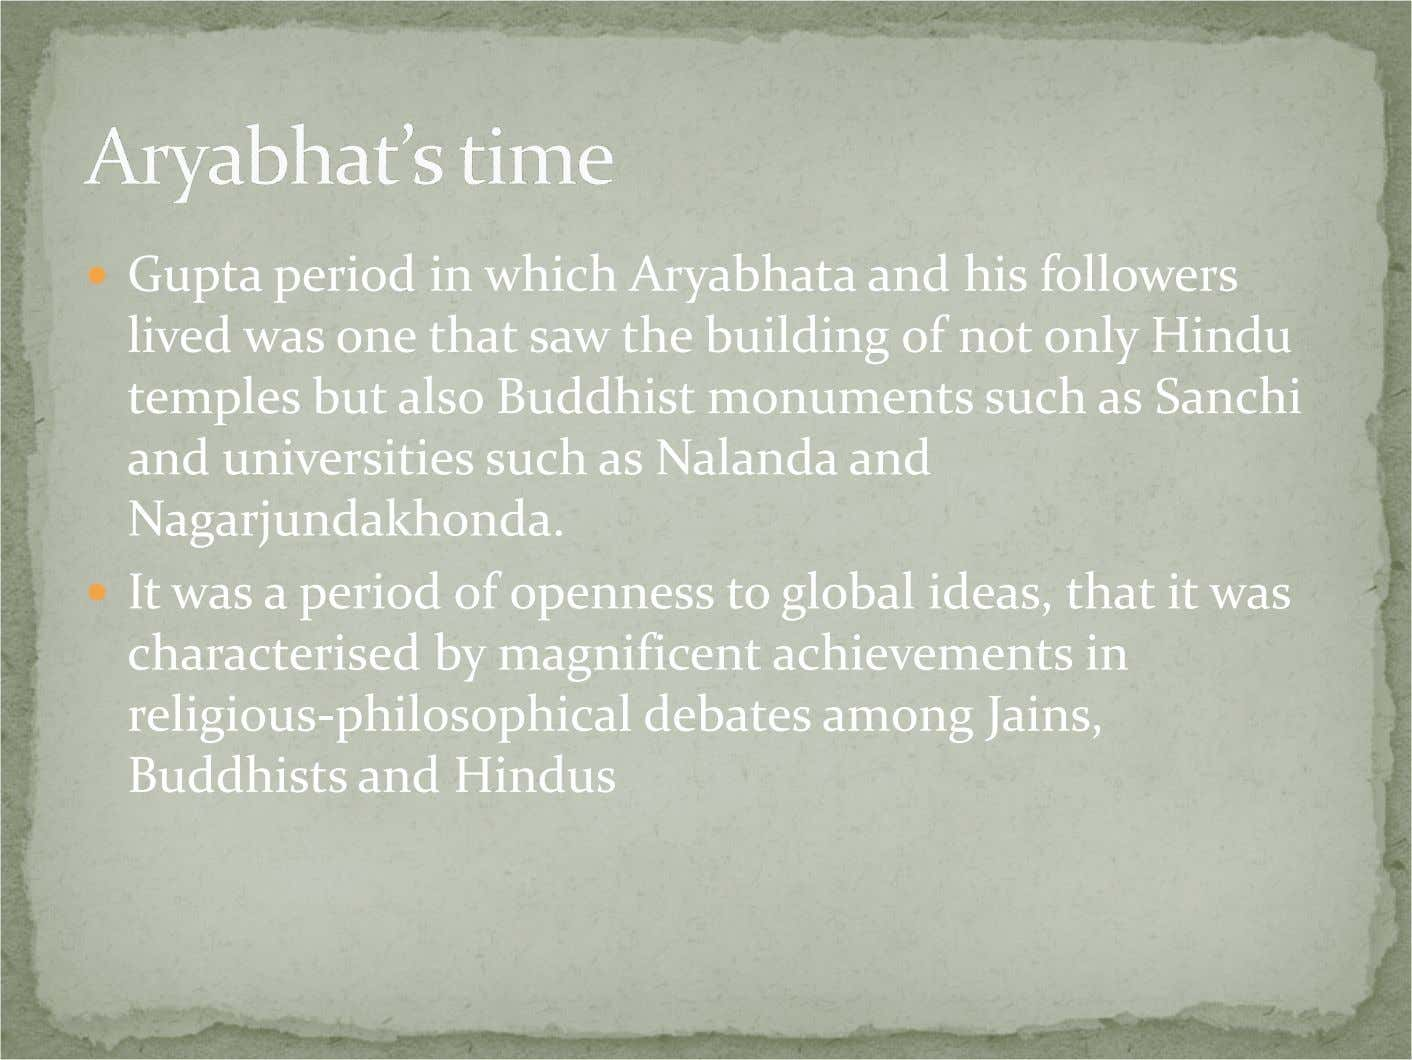 Gupta period in which Aryabhata and his followers lived was one that saw the building